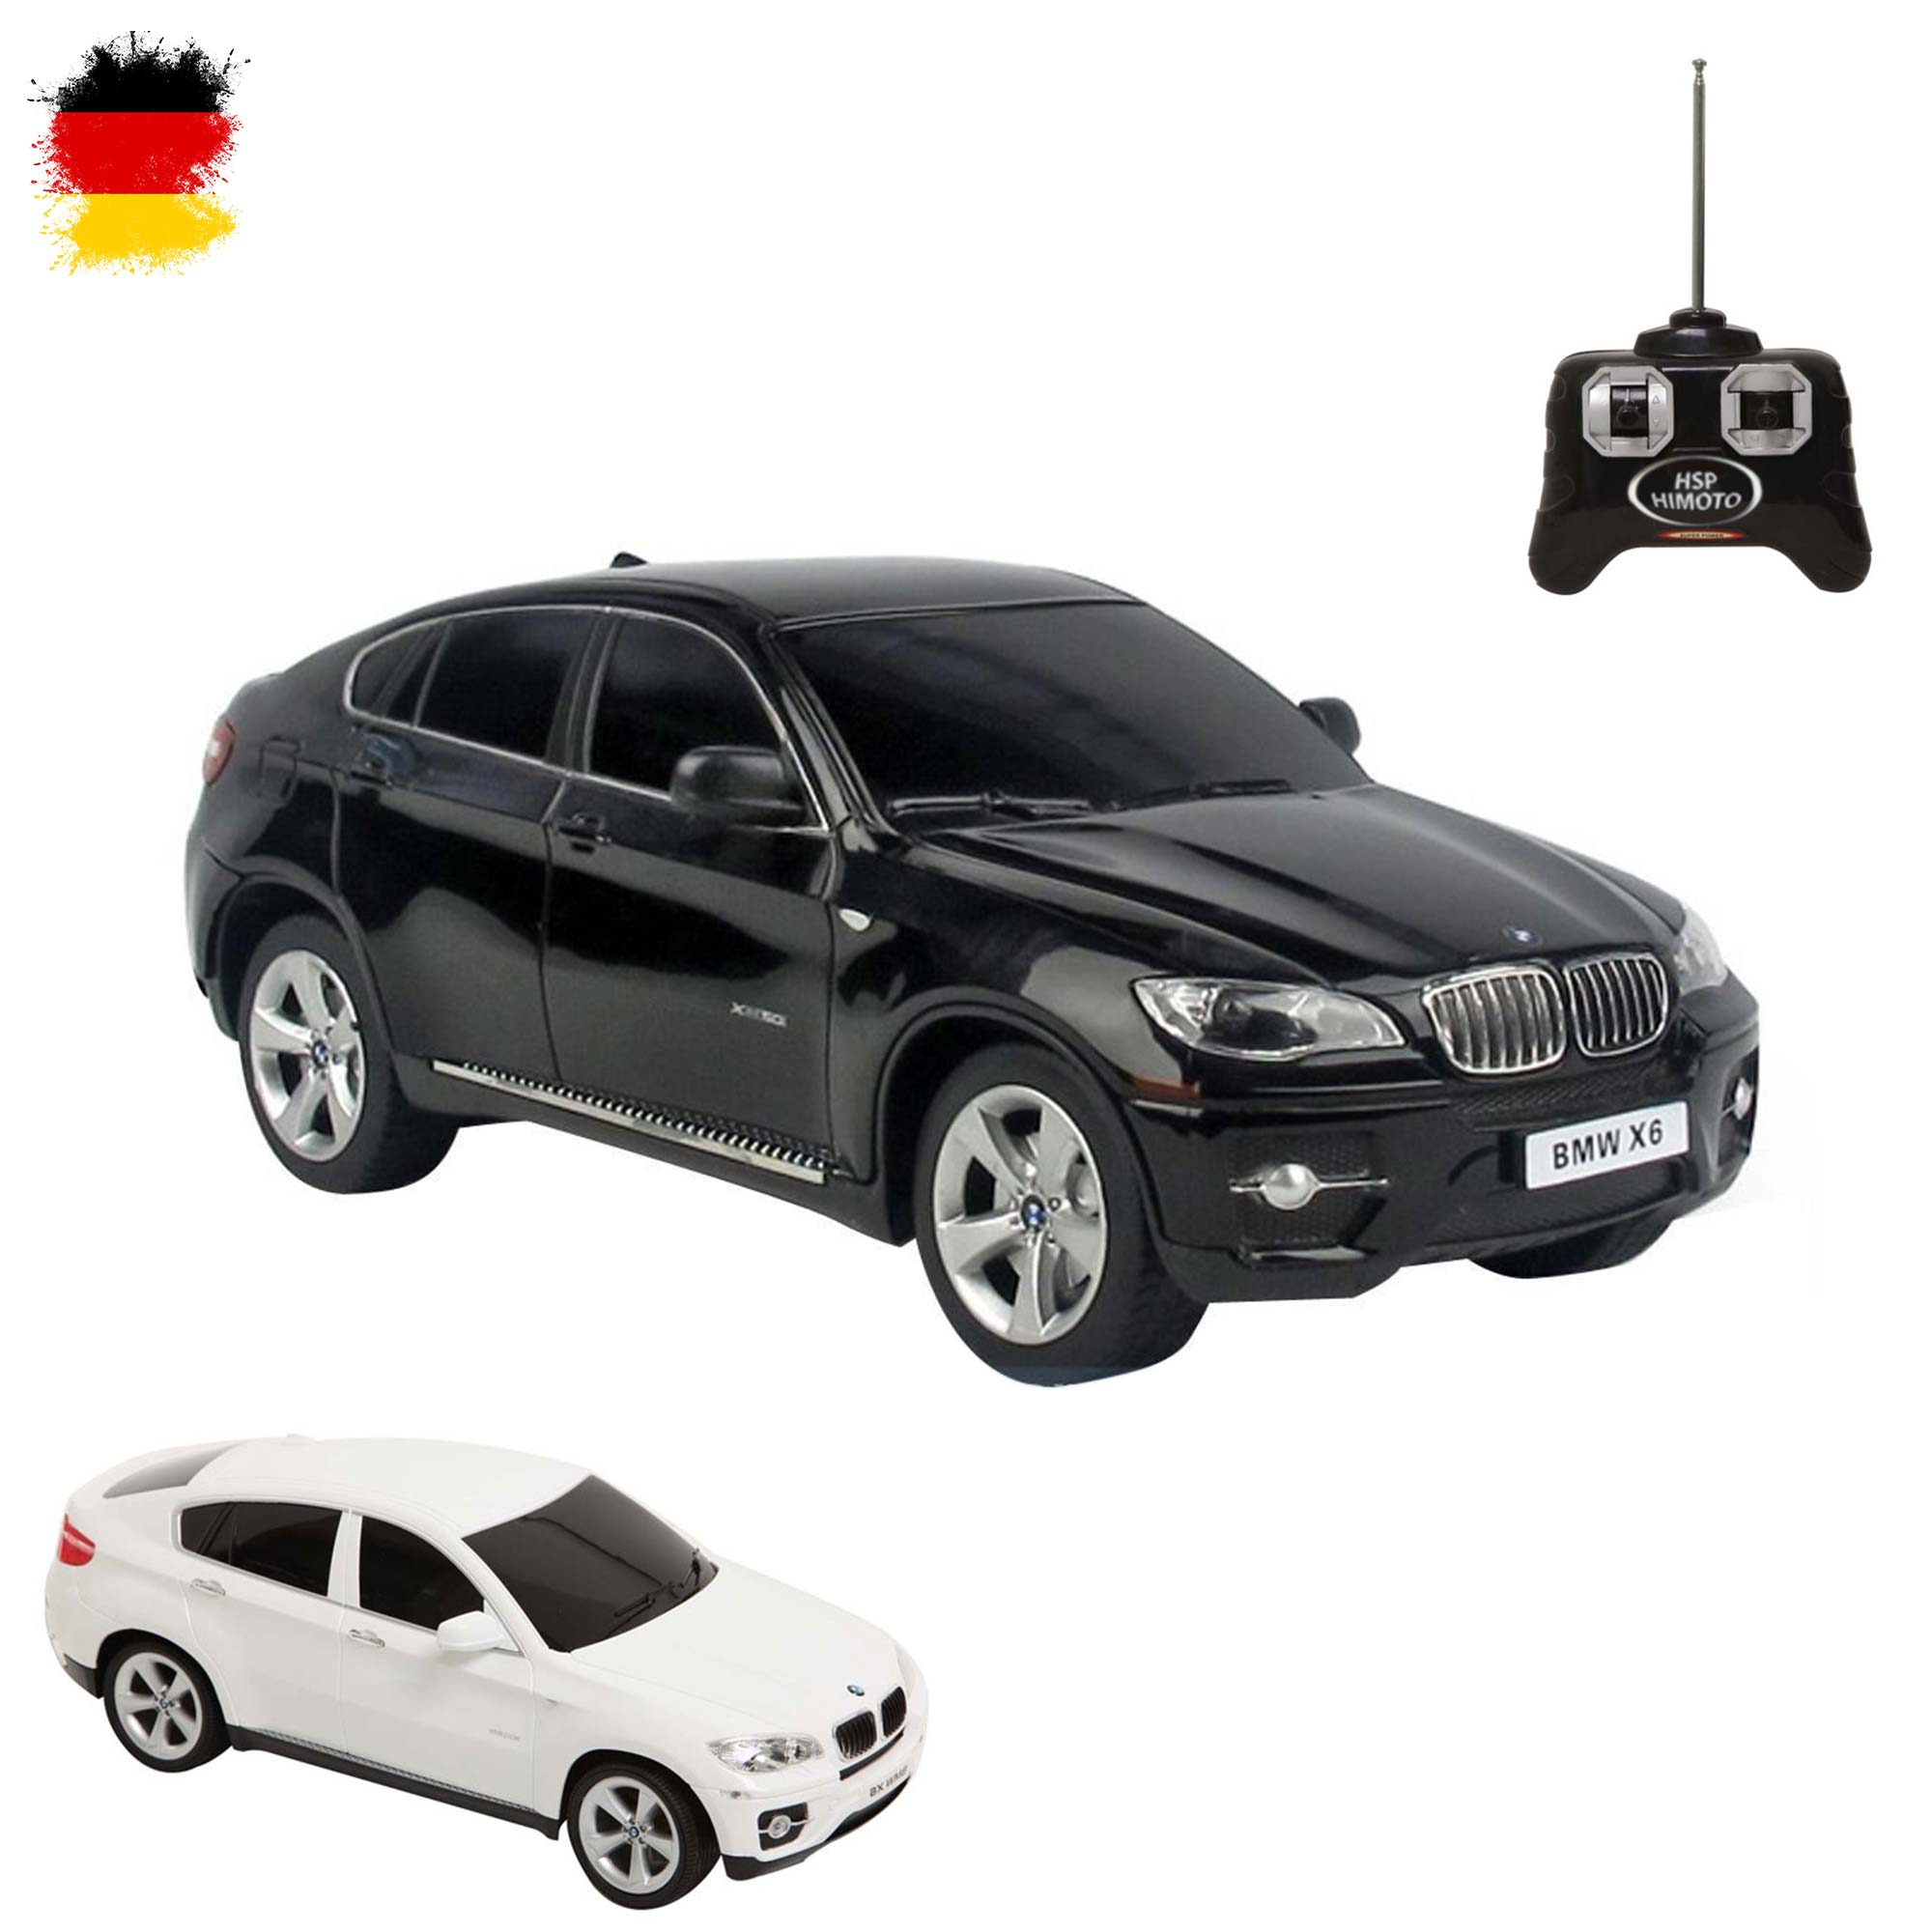 original bmw x6 rc ferngesteuertes auto lizenz fahrzeug. Black Bedroom Furniture Sets. Home Design Ideas